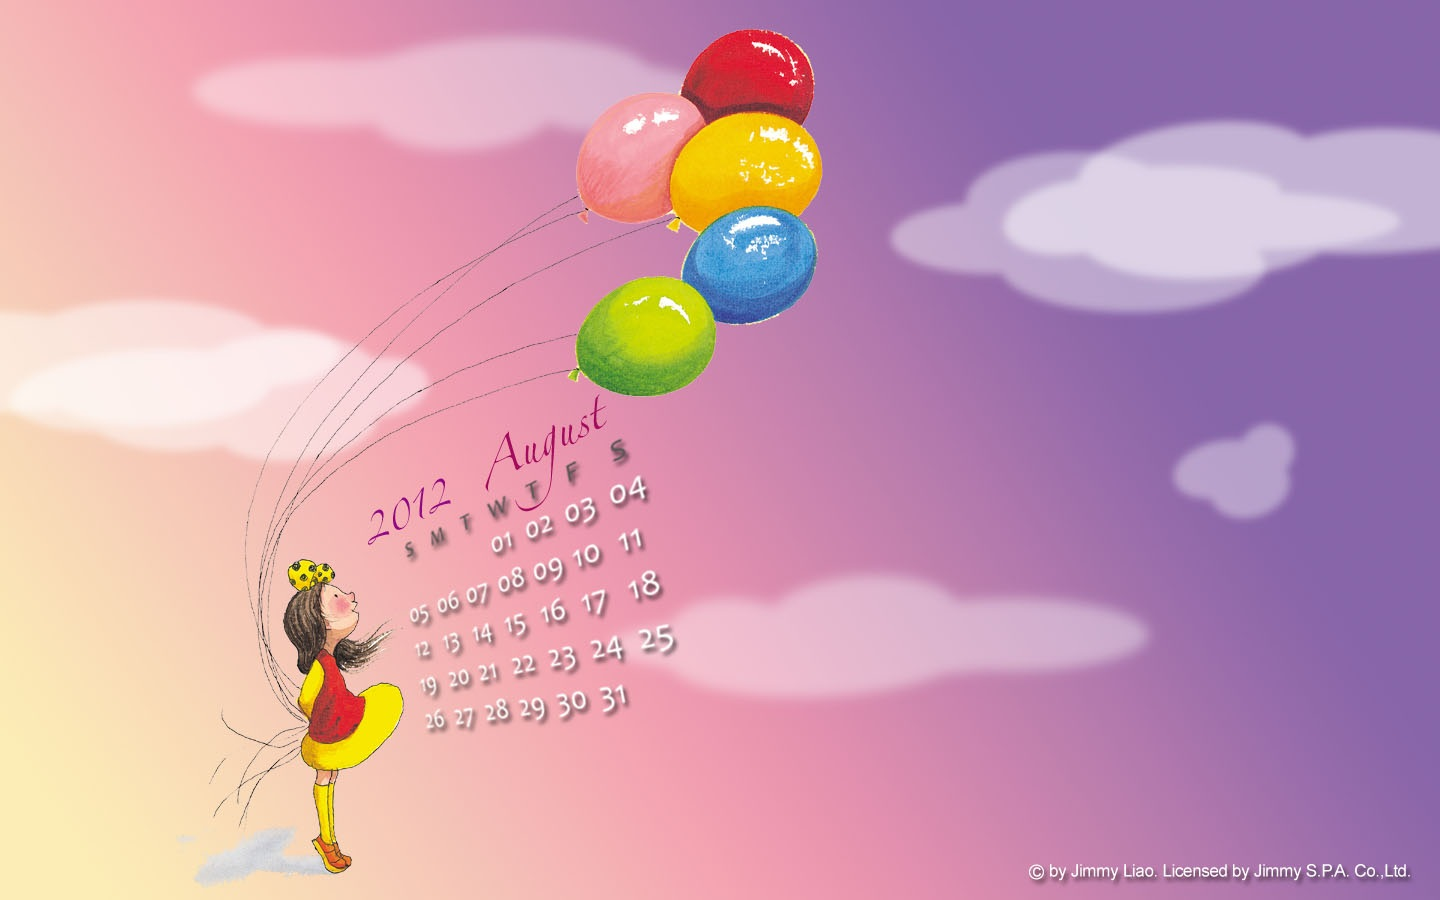 In January Calendar Wallpaper 31789